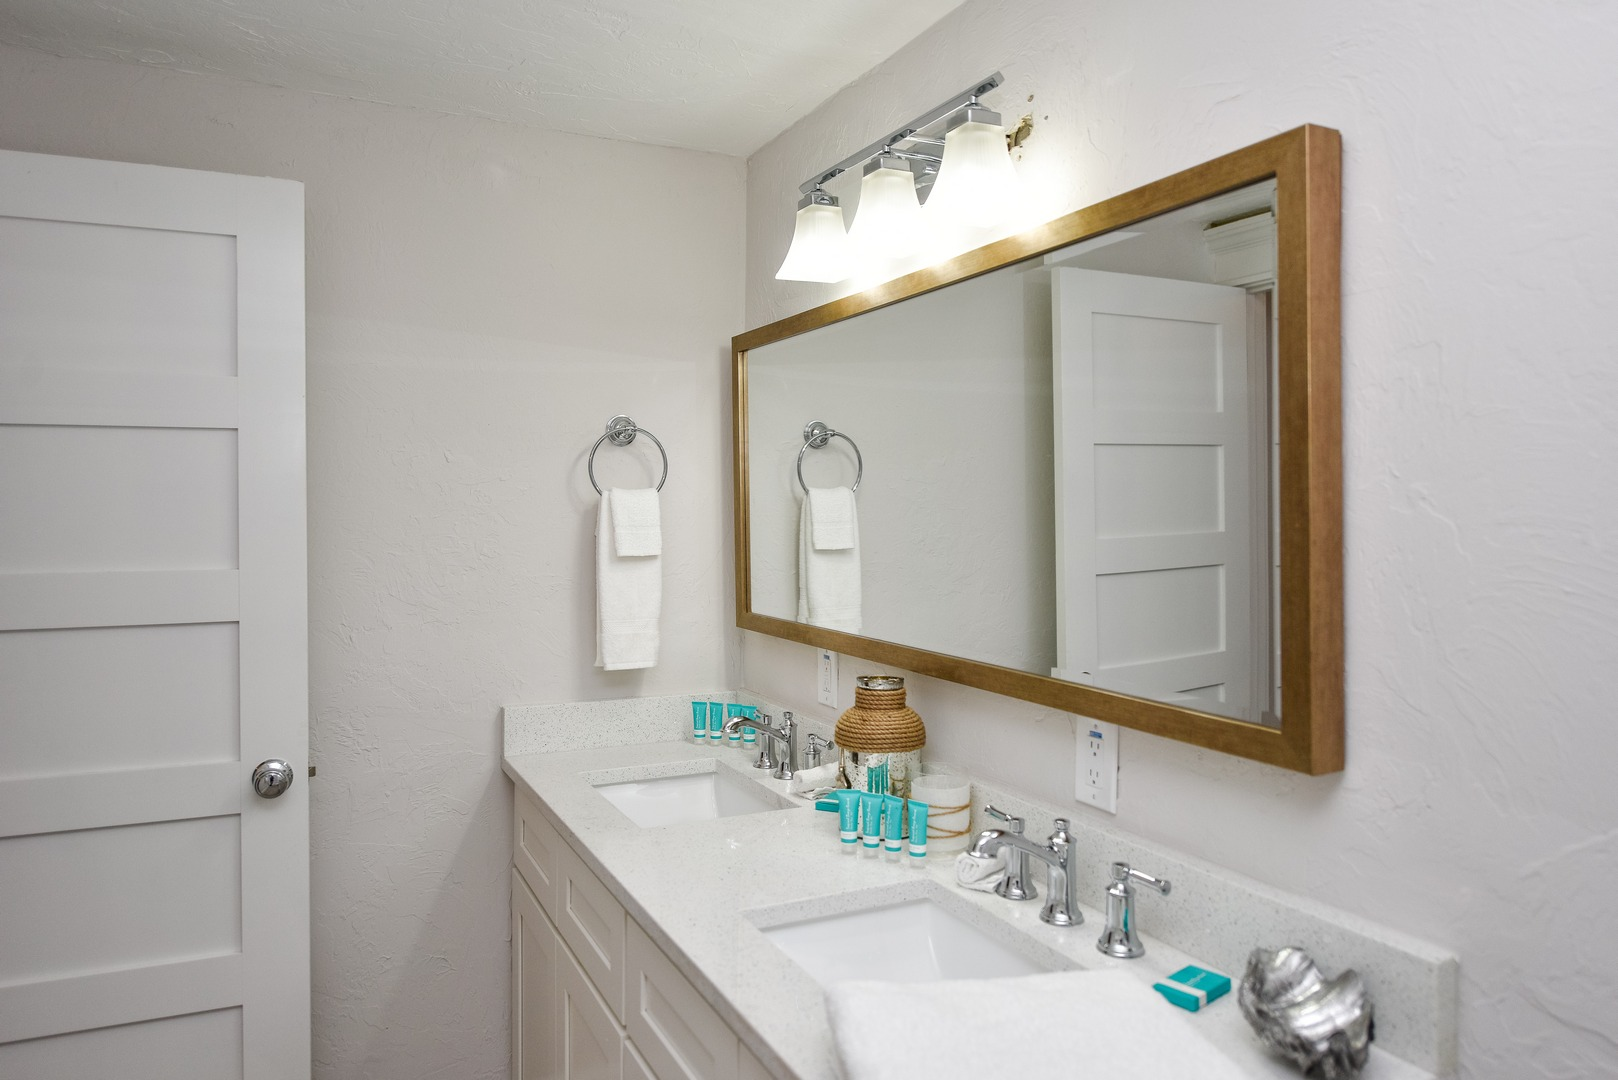 Dual Sink Vanity is a nice touch in the bath